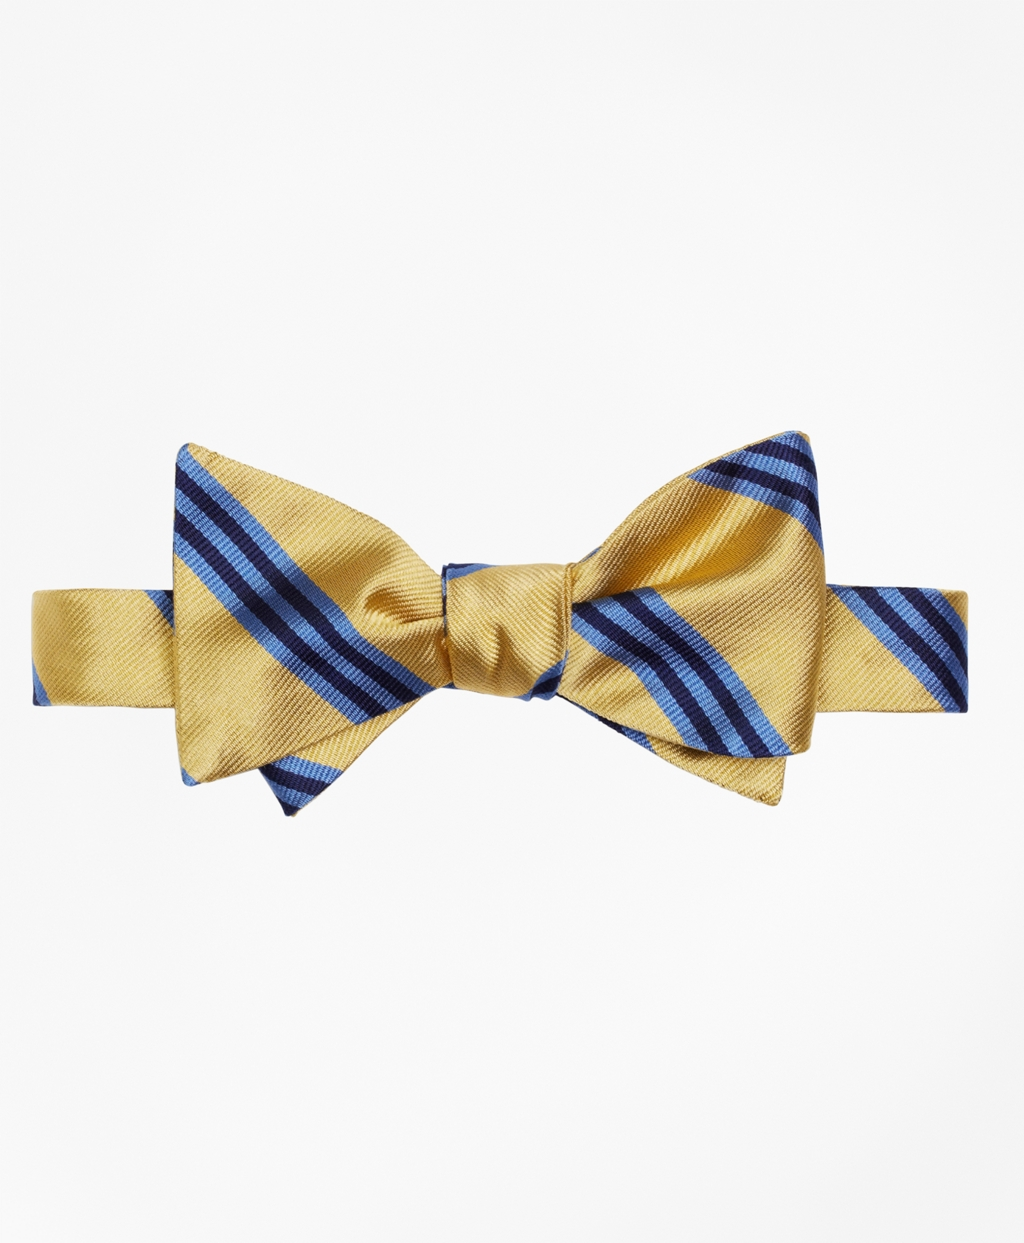 1920s Bow Ties | Gatsby Tie,  Art Deco Tie Brooks Brothers Mens BB1 Rep Bow Tie $59.50 AT vintagedancer.com